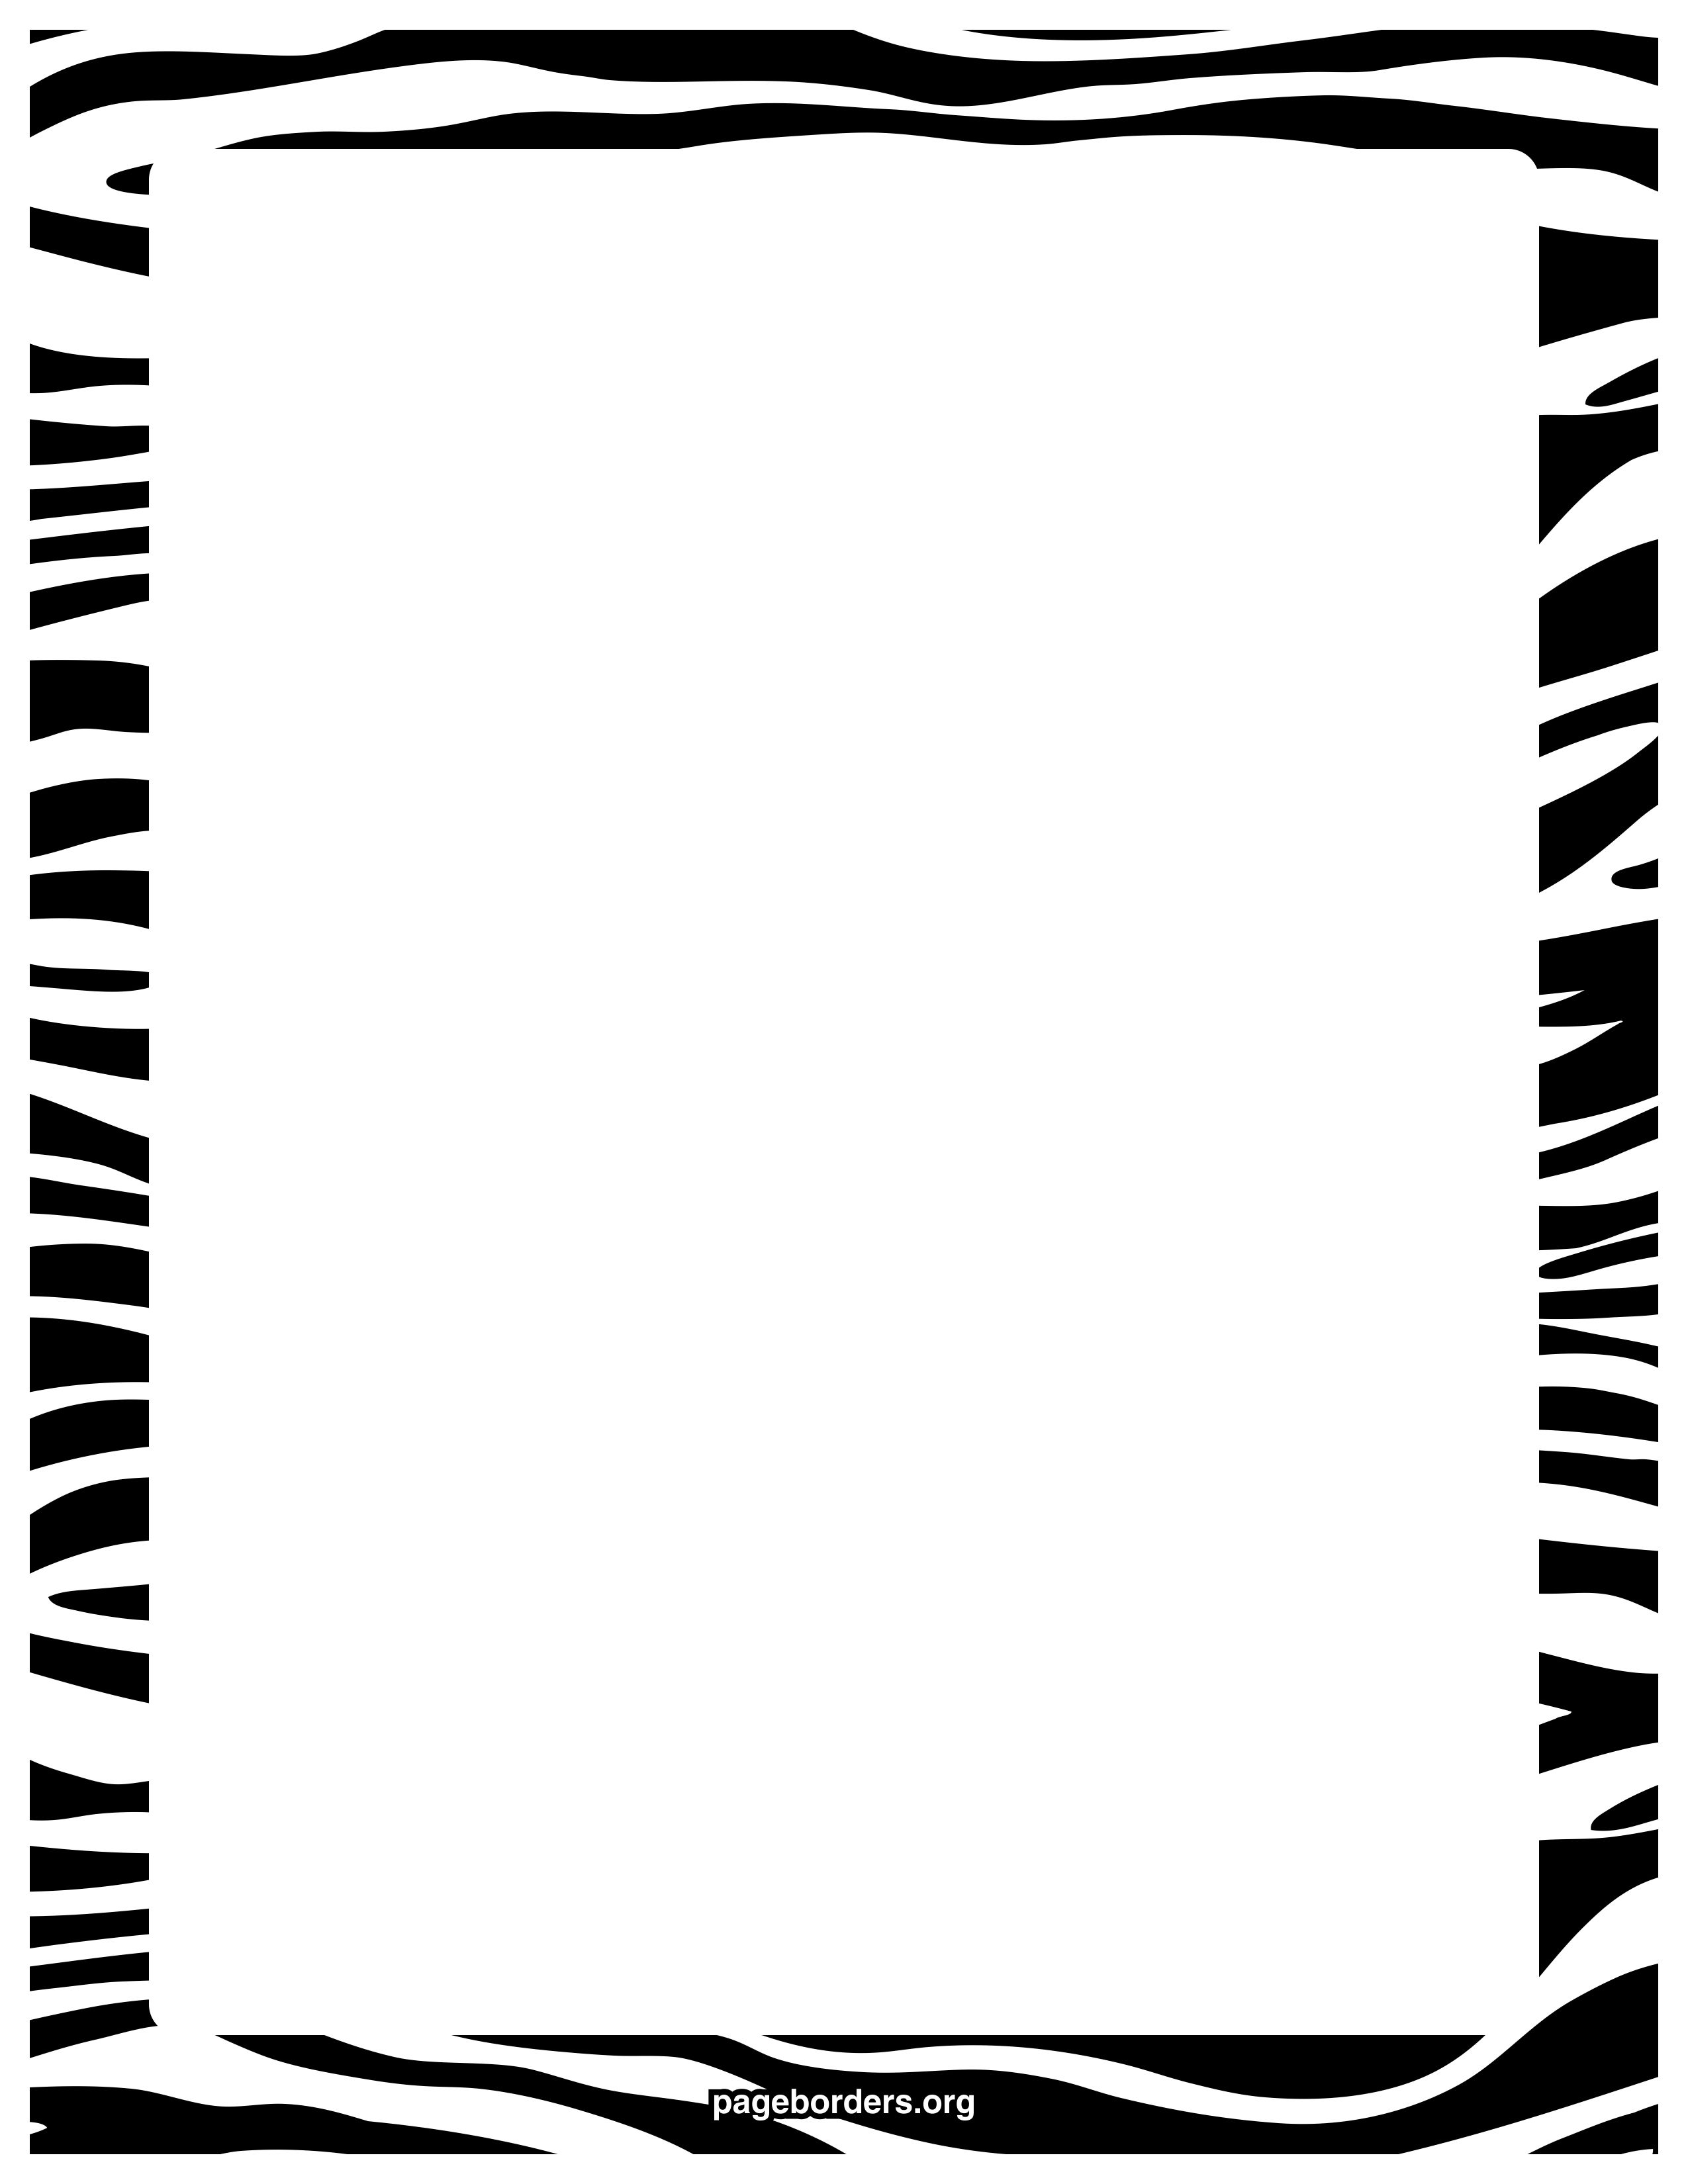 Zebra print border watermarkedg 25503300 pixels crafts free zebra print border templates including printable border paper and clip art versions voltagebd Choice Image